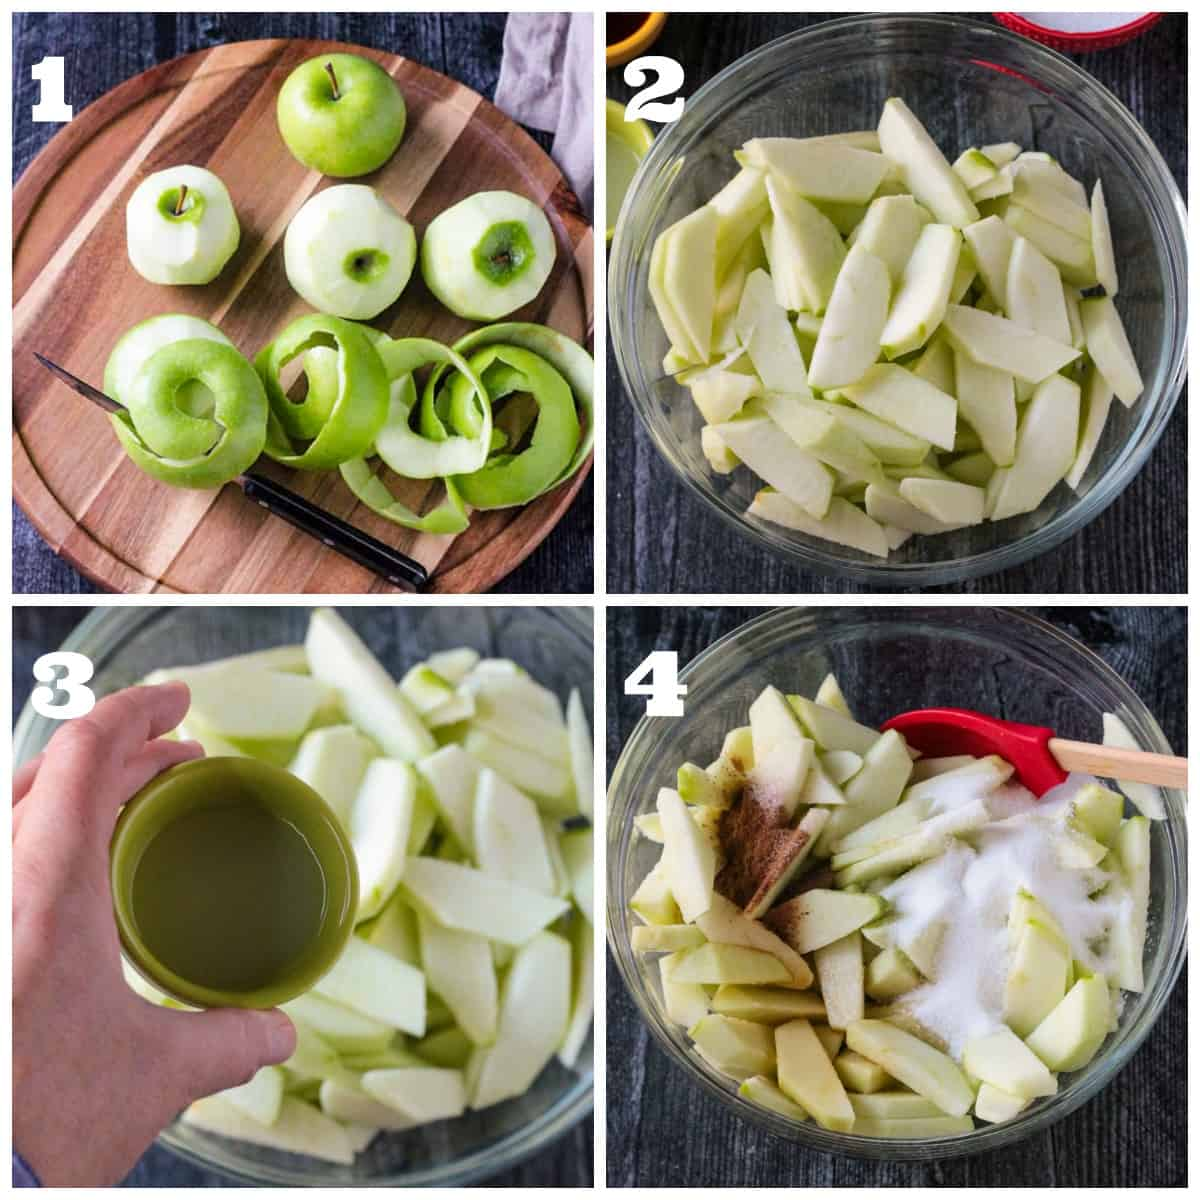 4 photo collage depicting peeling & slicing apples and mixing them with spices.